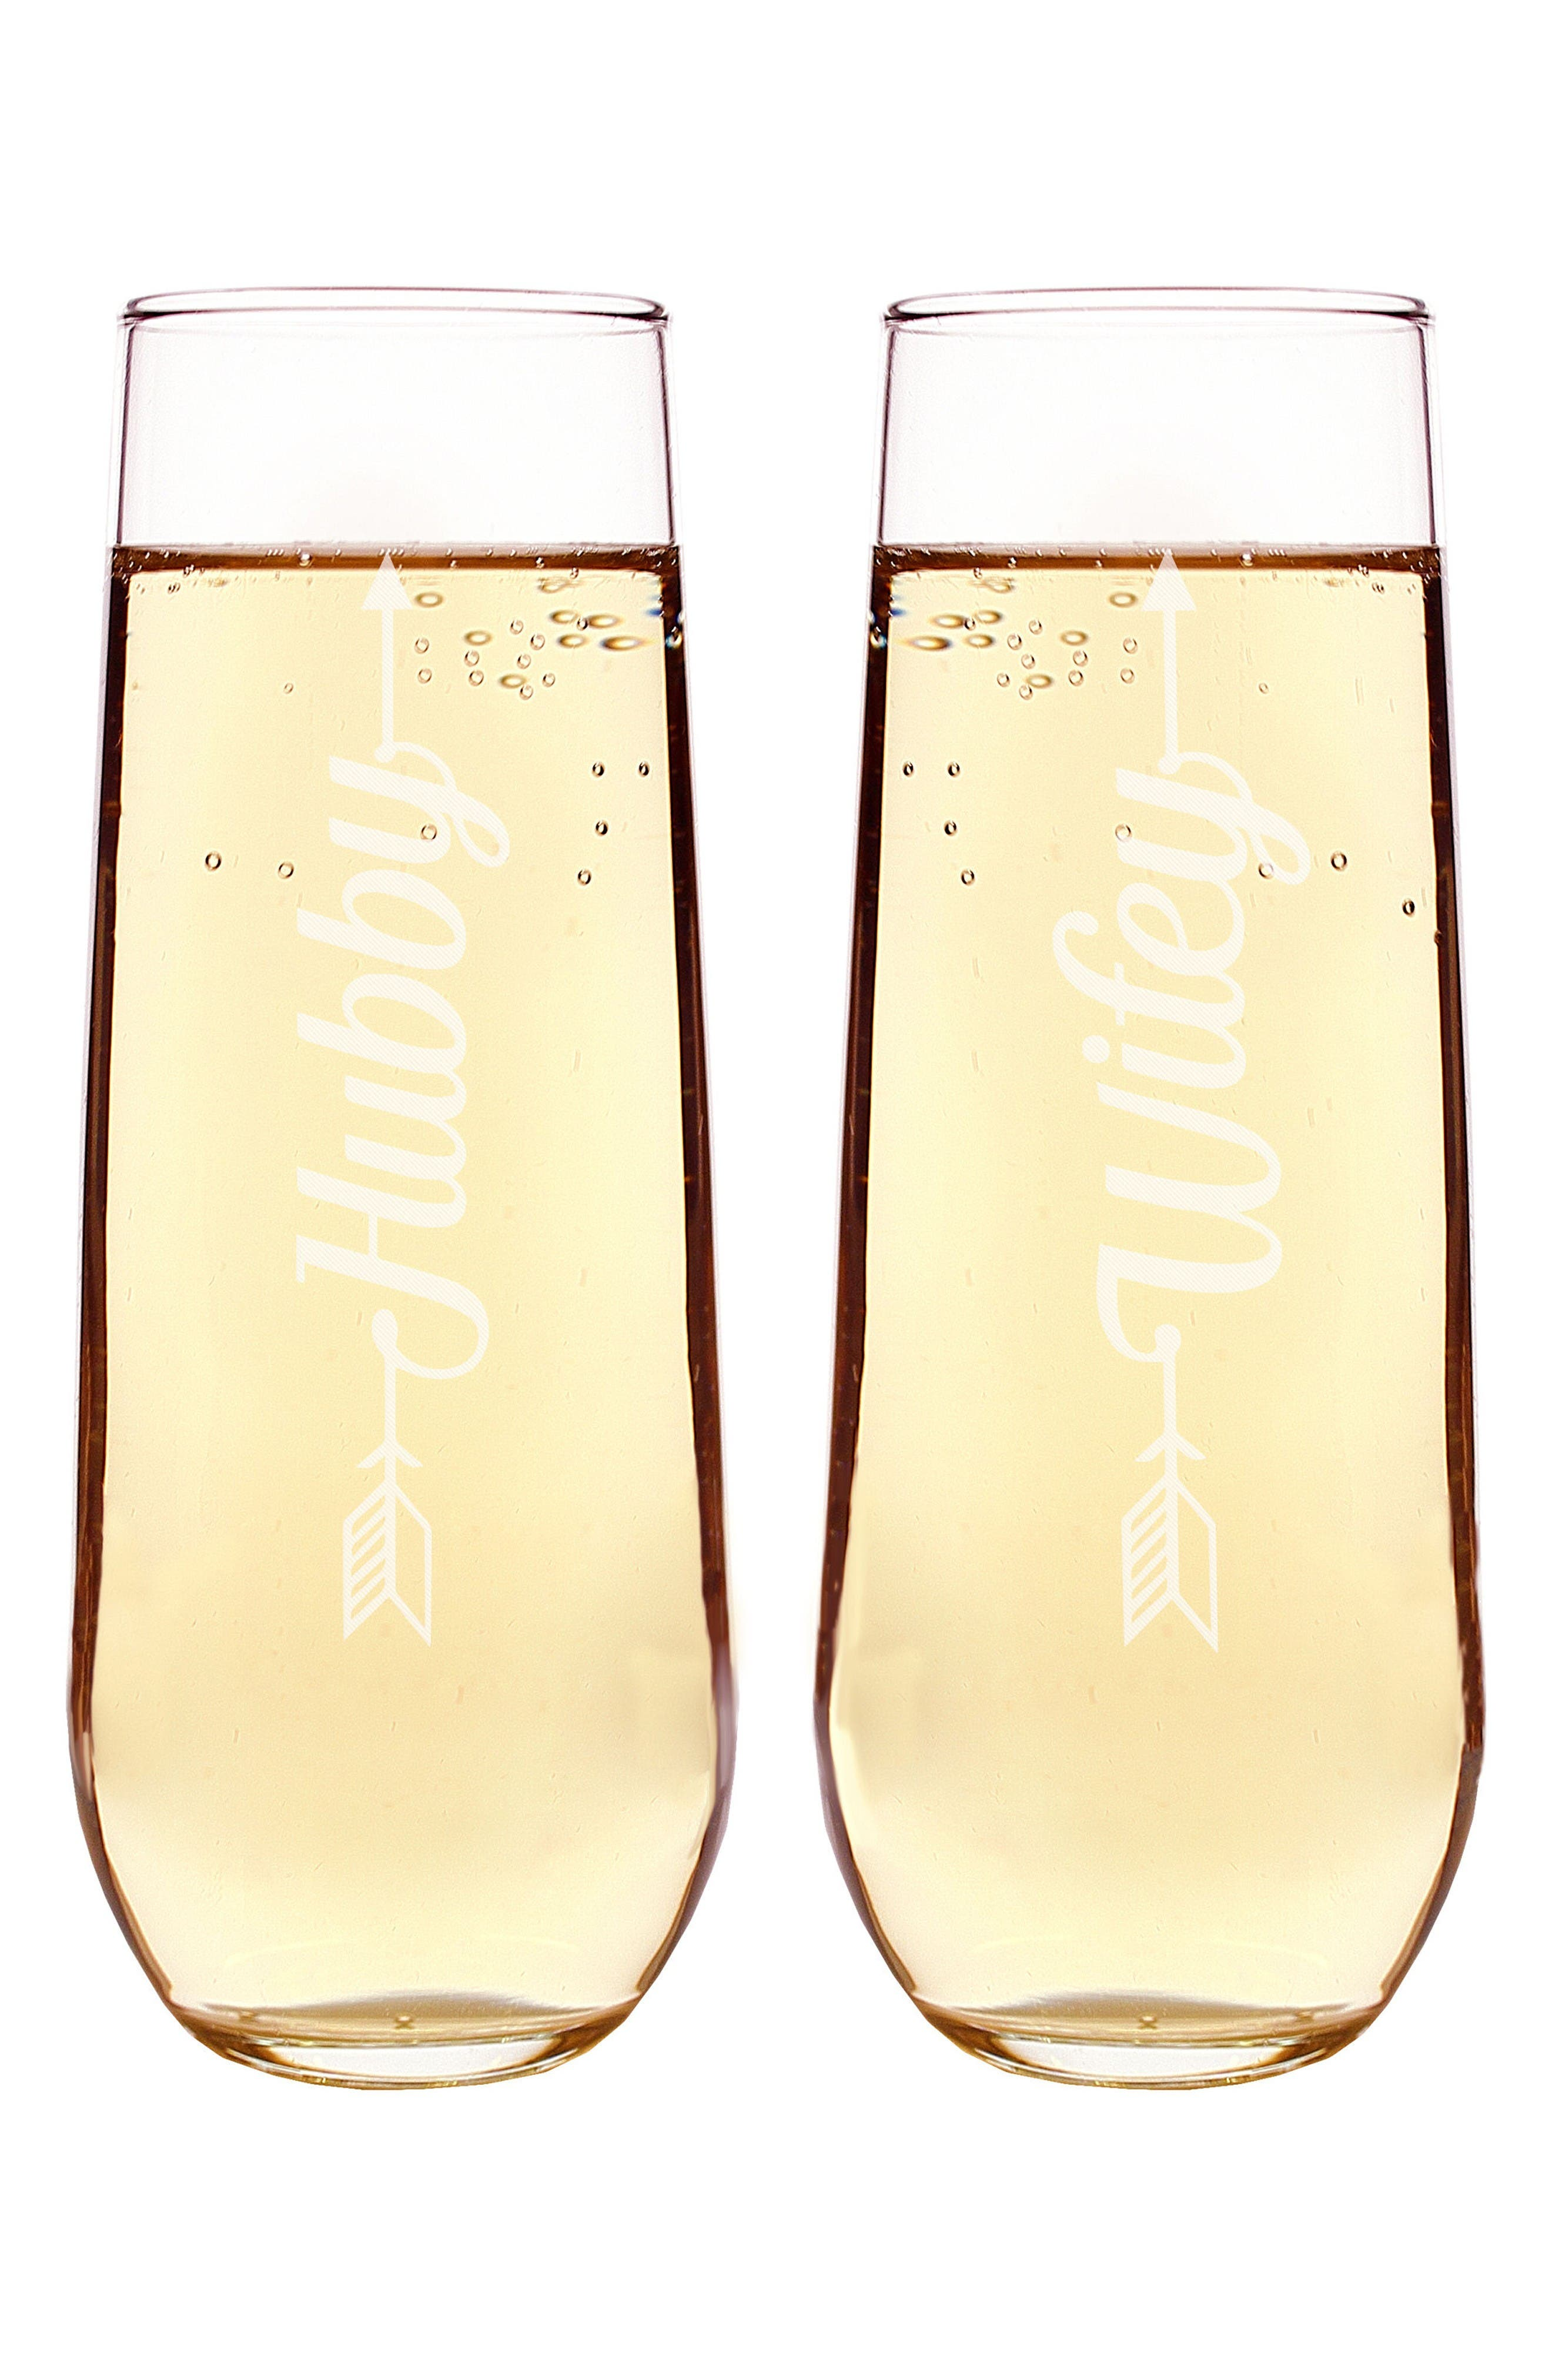 CATHY'S CONCEPTS Hubby/Wifey Set of 2 Stemless Champagne Flutes